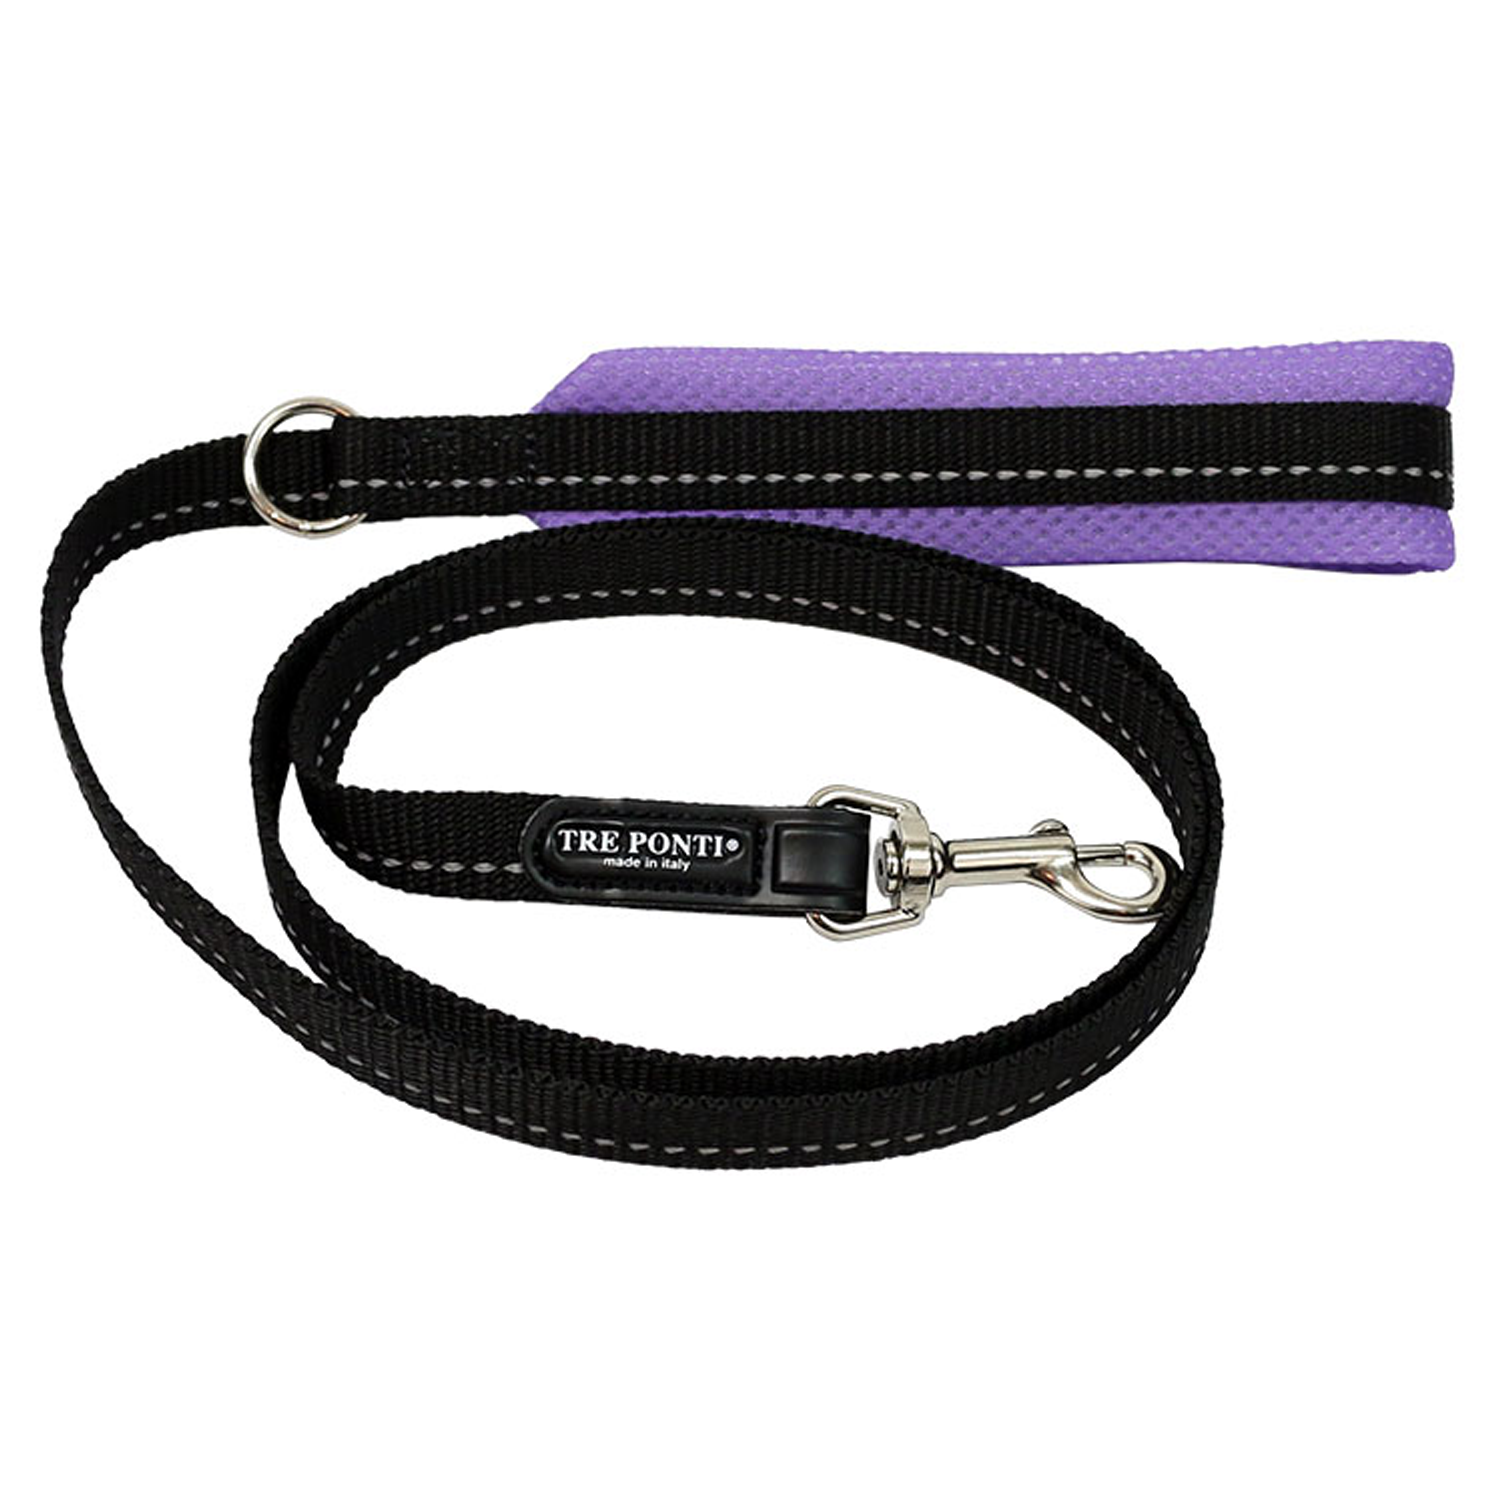 Lilac Mesh Dog Leash